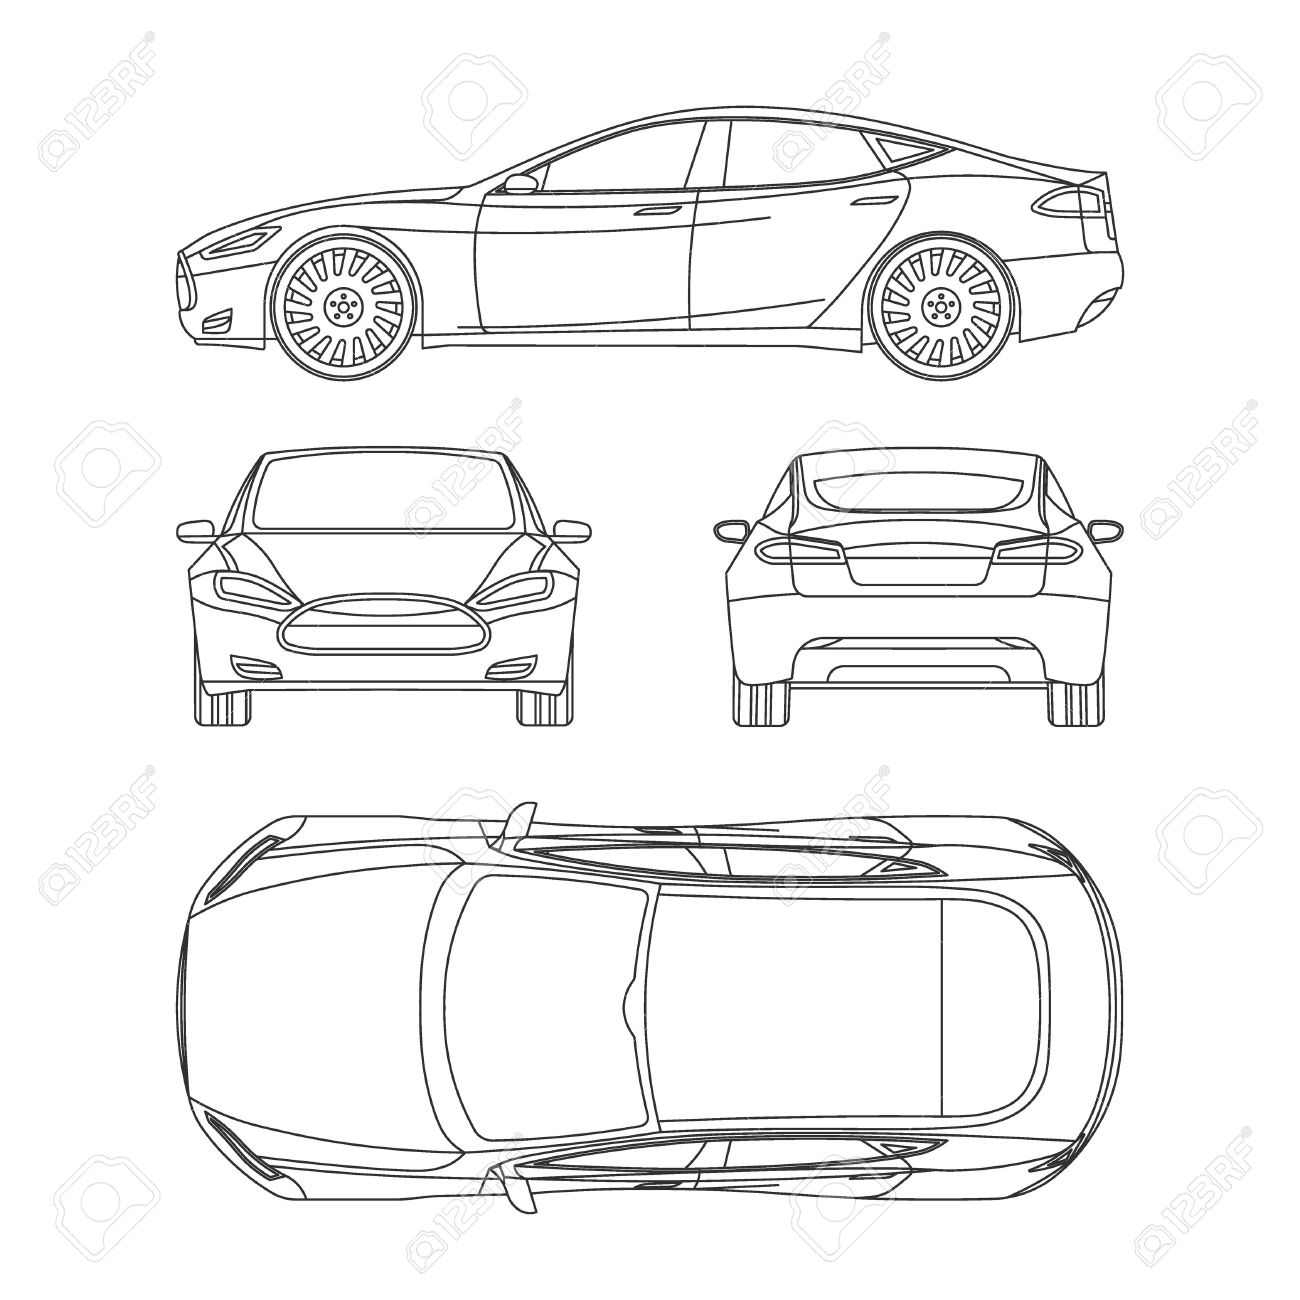 Blueprint Car Stock Photos. Royalty Free Blueprint Car Images